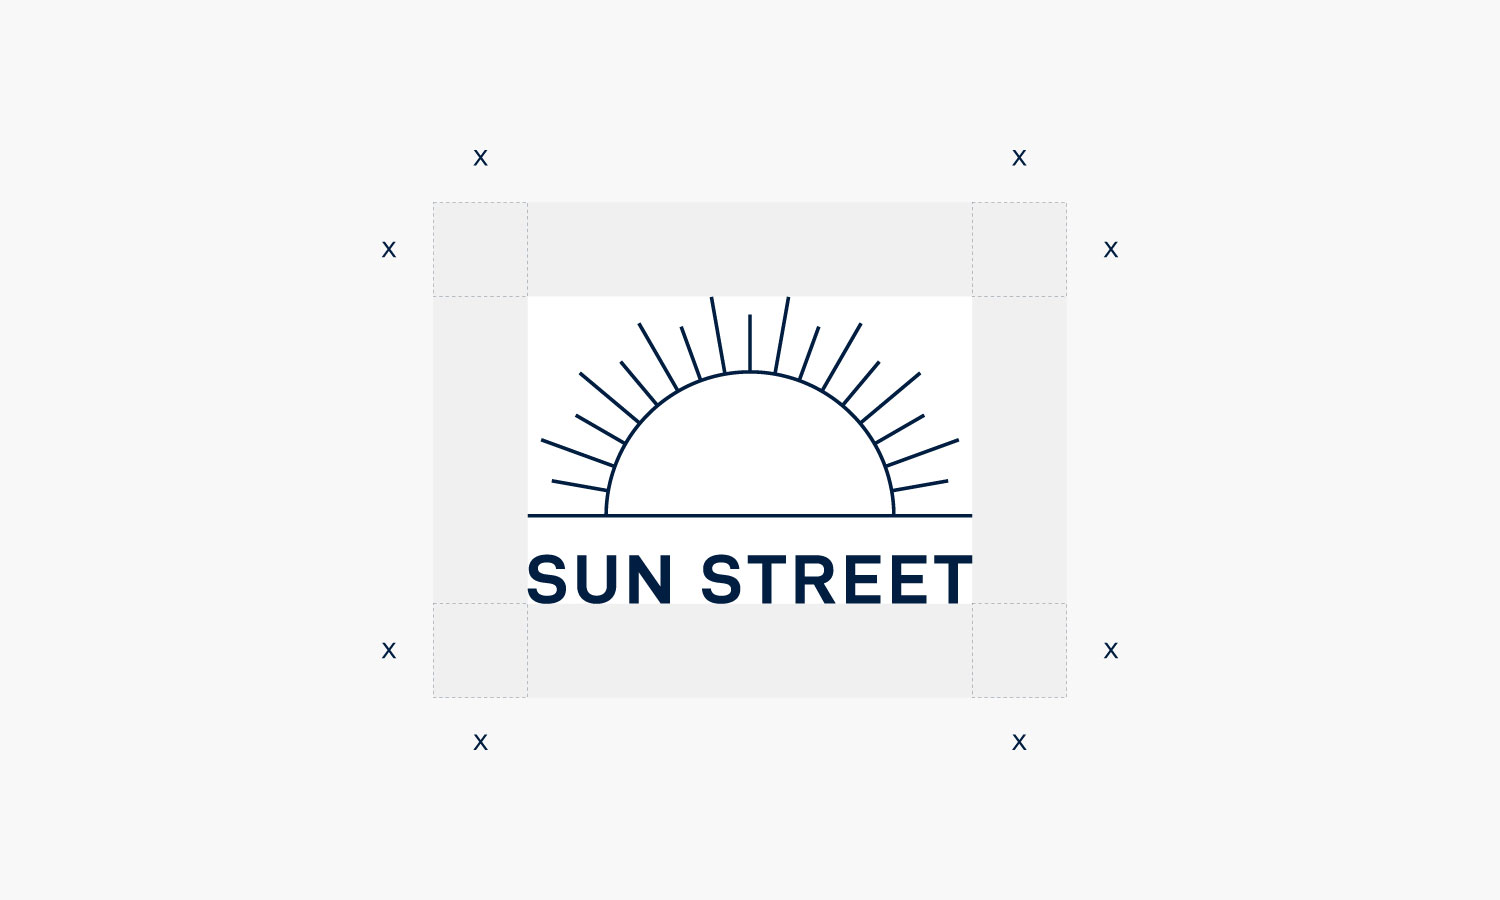 Sun Street Logo and Its Dimensions